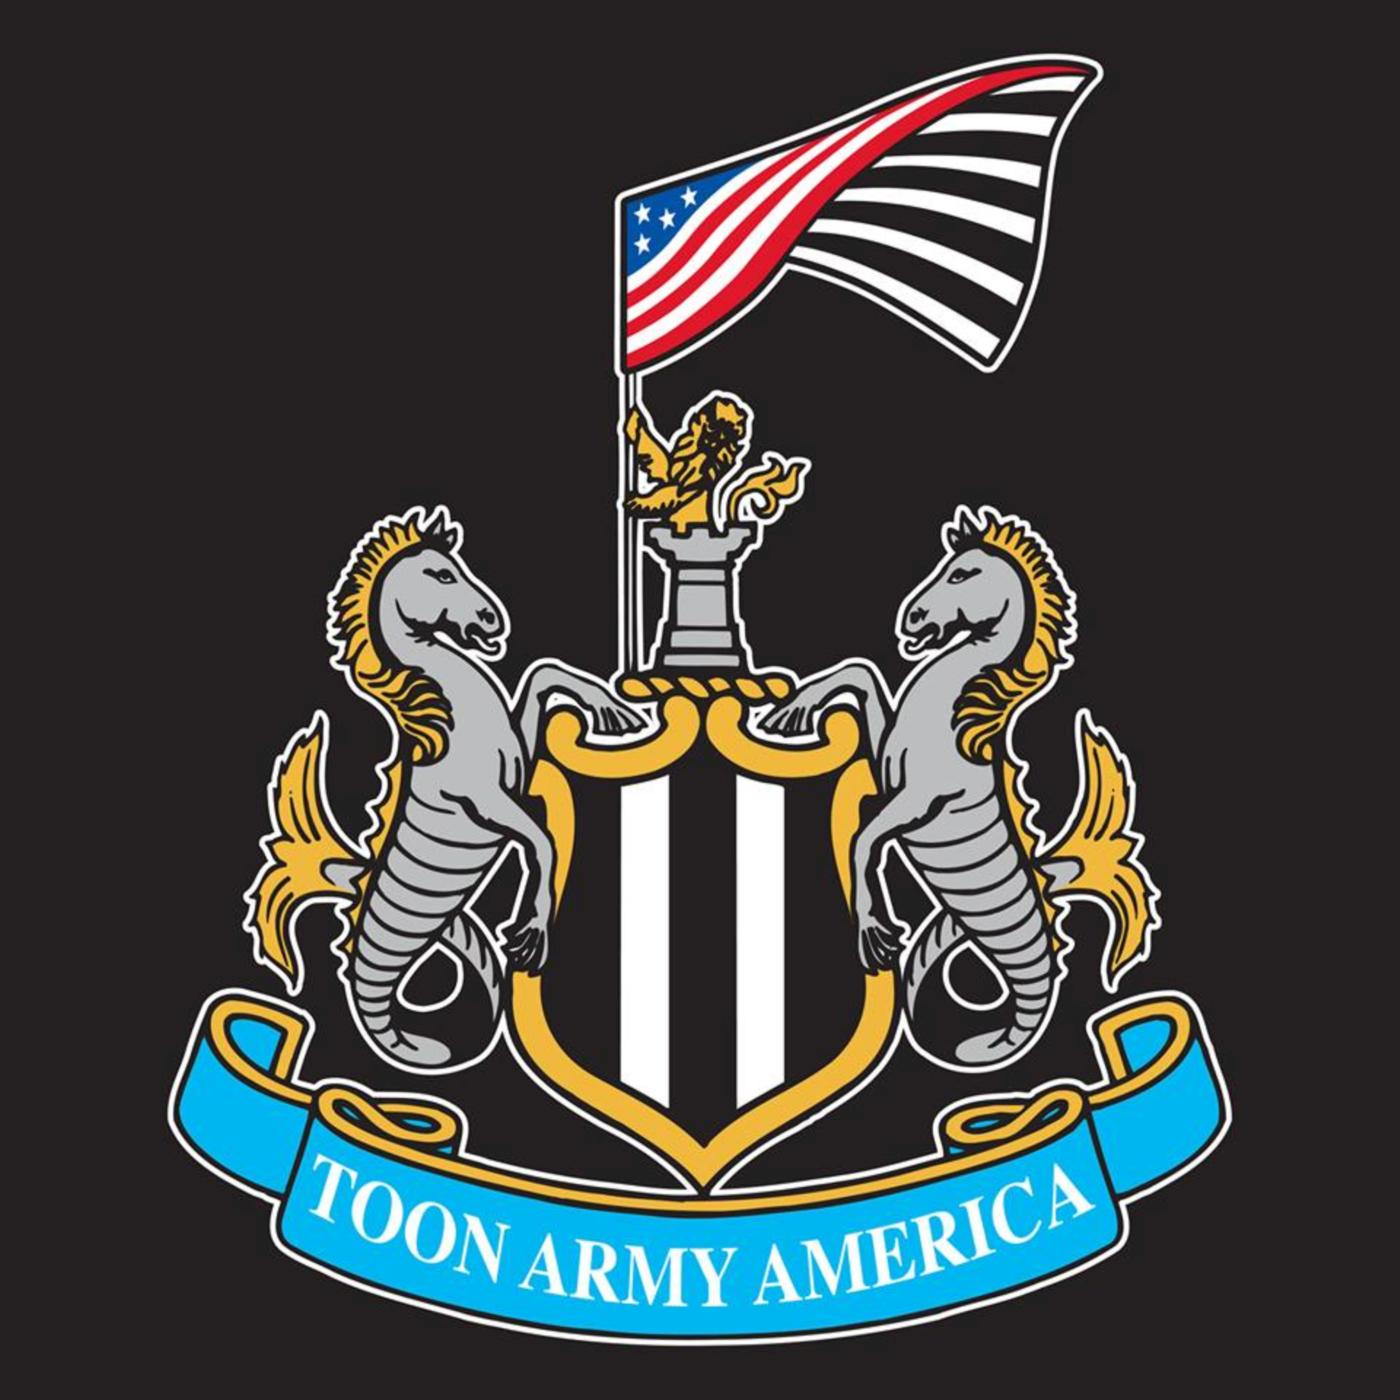 Toon Army America